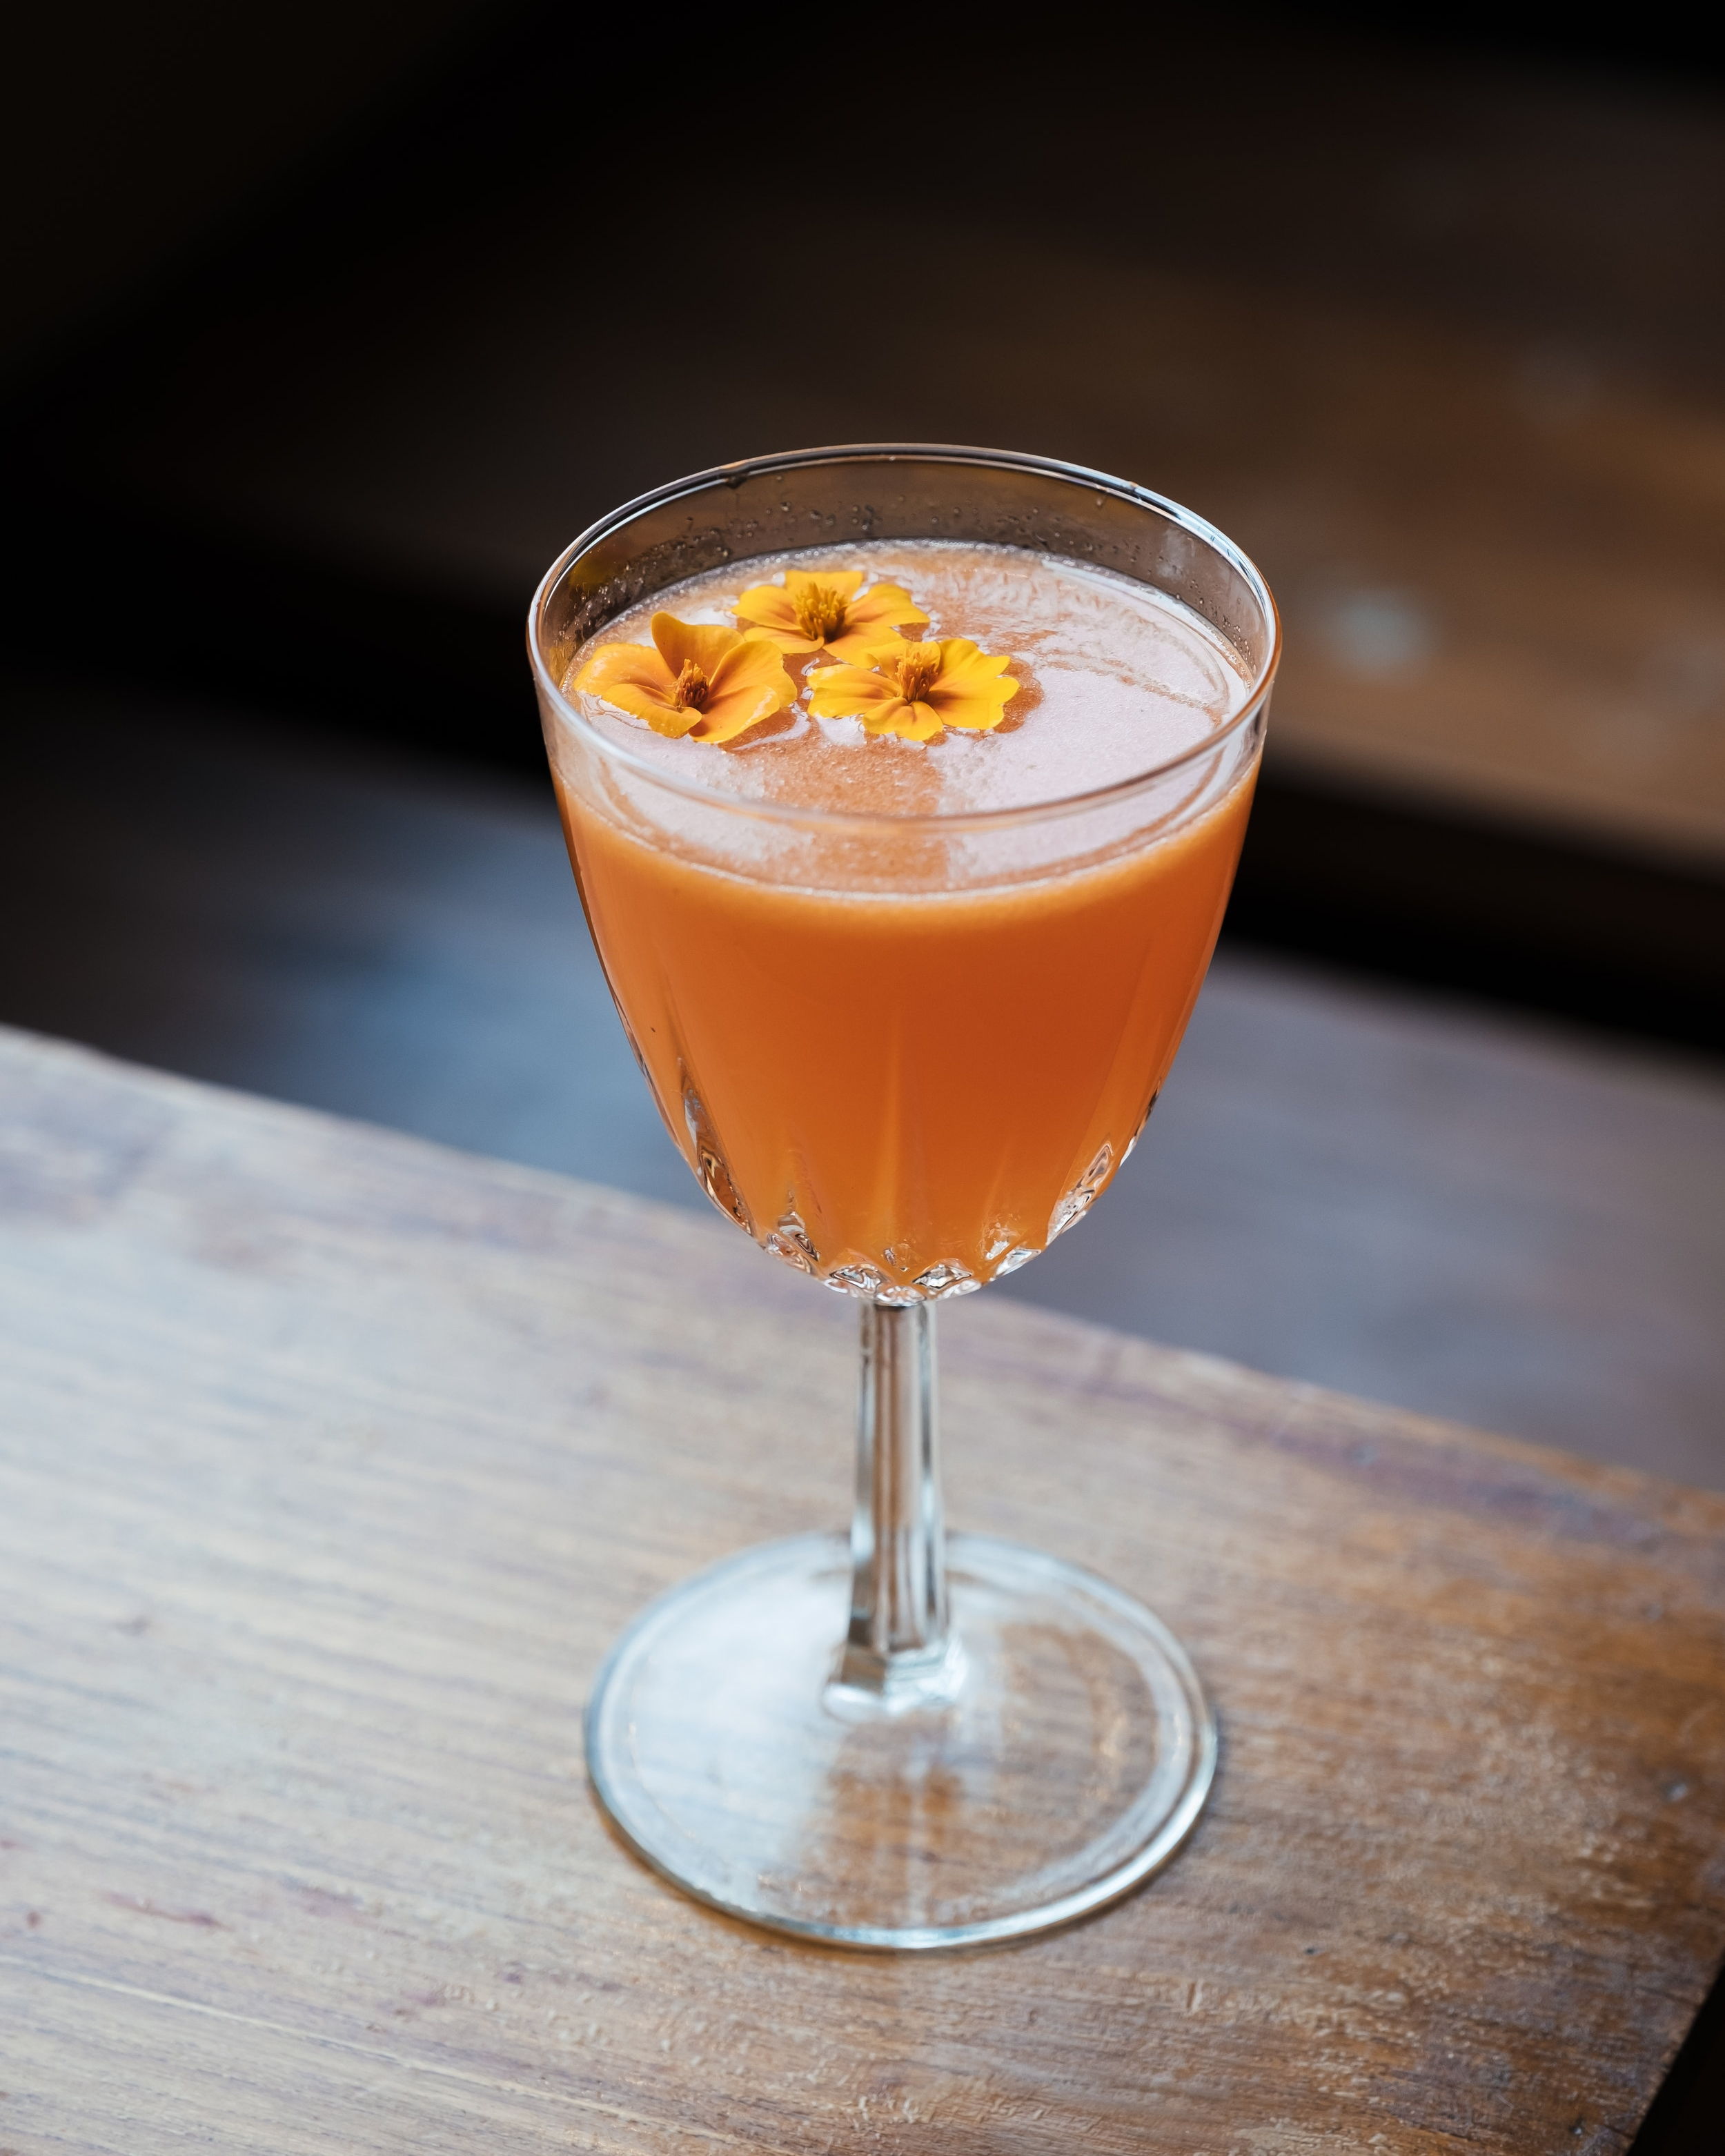 ingredients: - 1 oz. Mezcal Espadín3/4 oz. Aperol3/4 oz. Grapefruit juice1/2 oz. Passionfruit syrup1 dash orange bitters